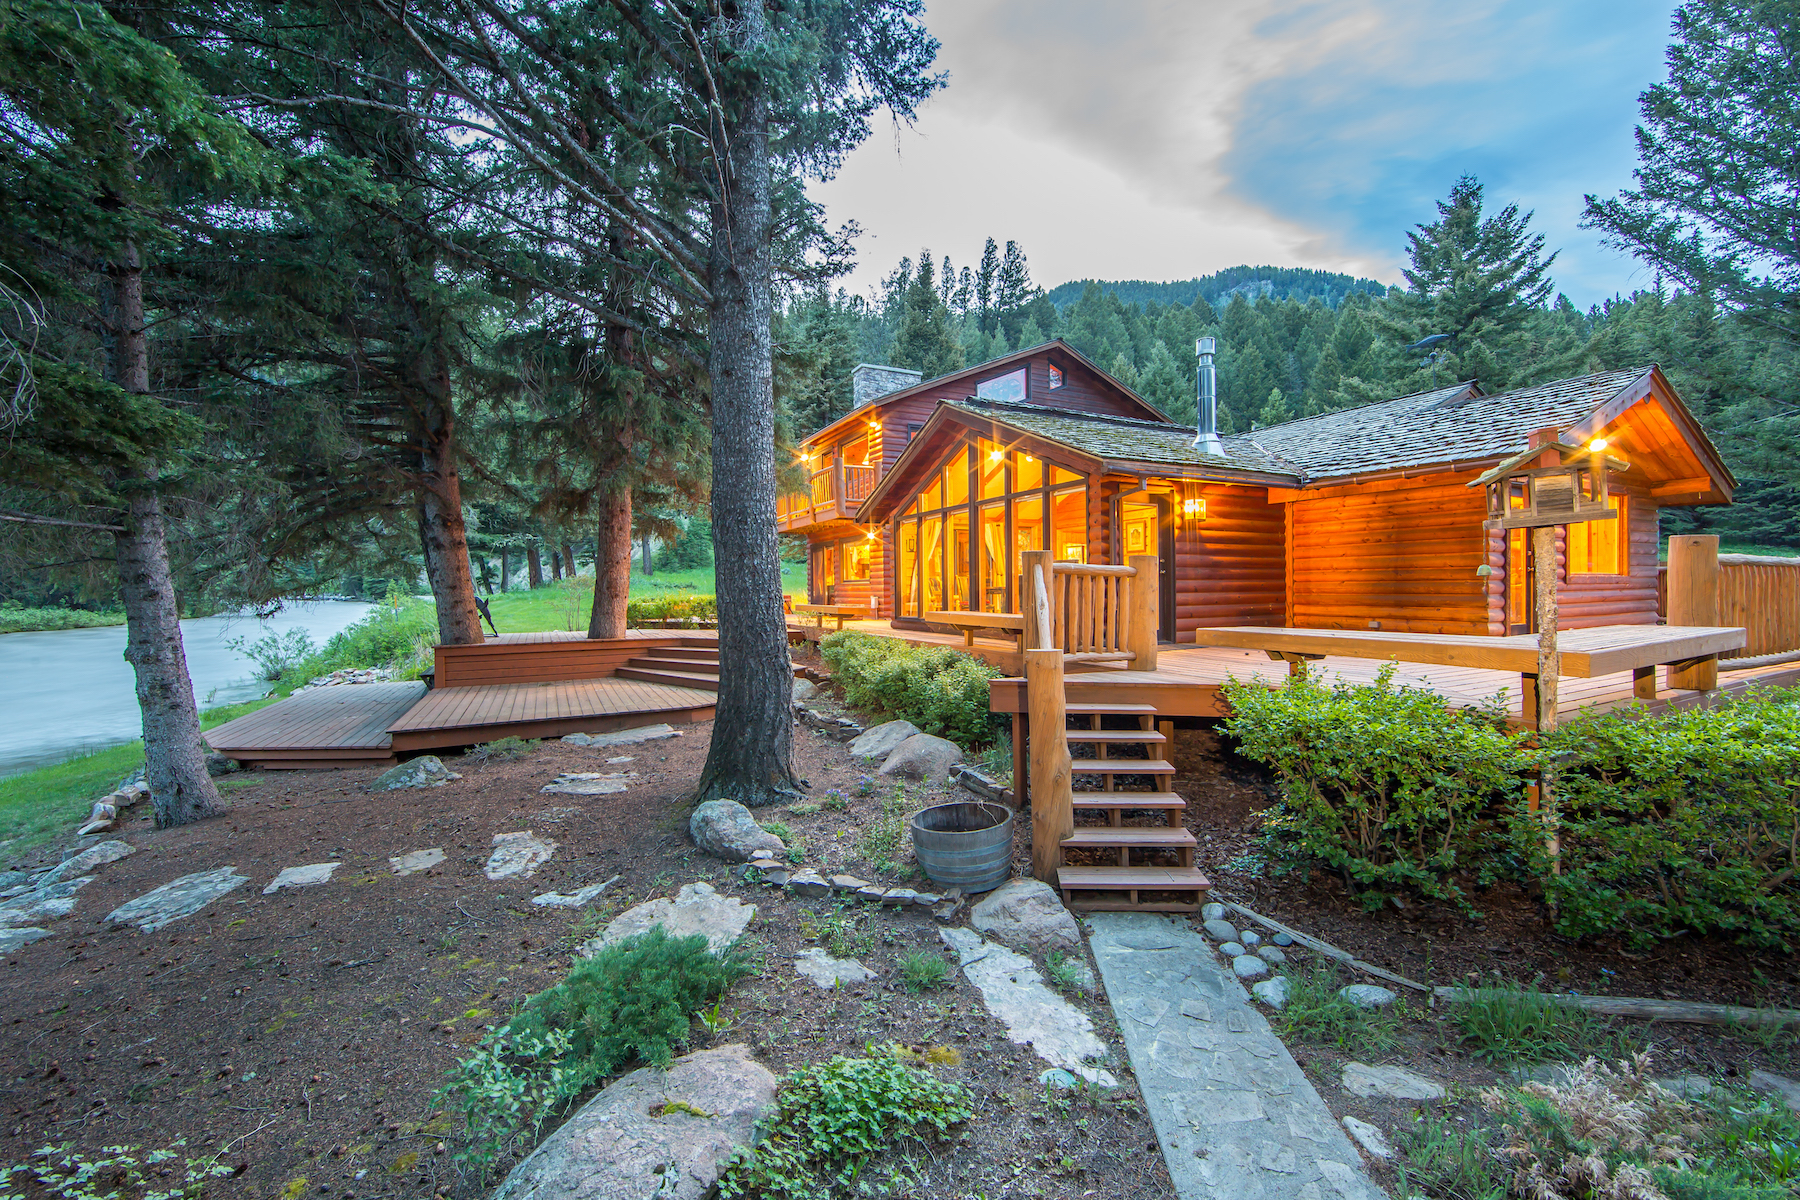 Single Family Home for Sale at Gallatin Canyon Cabin 50365 Gallatin Road Gallatin Gateway, Montana, 59730 United States